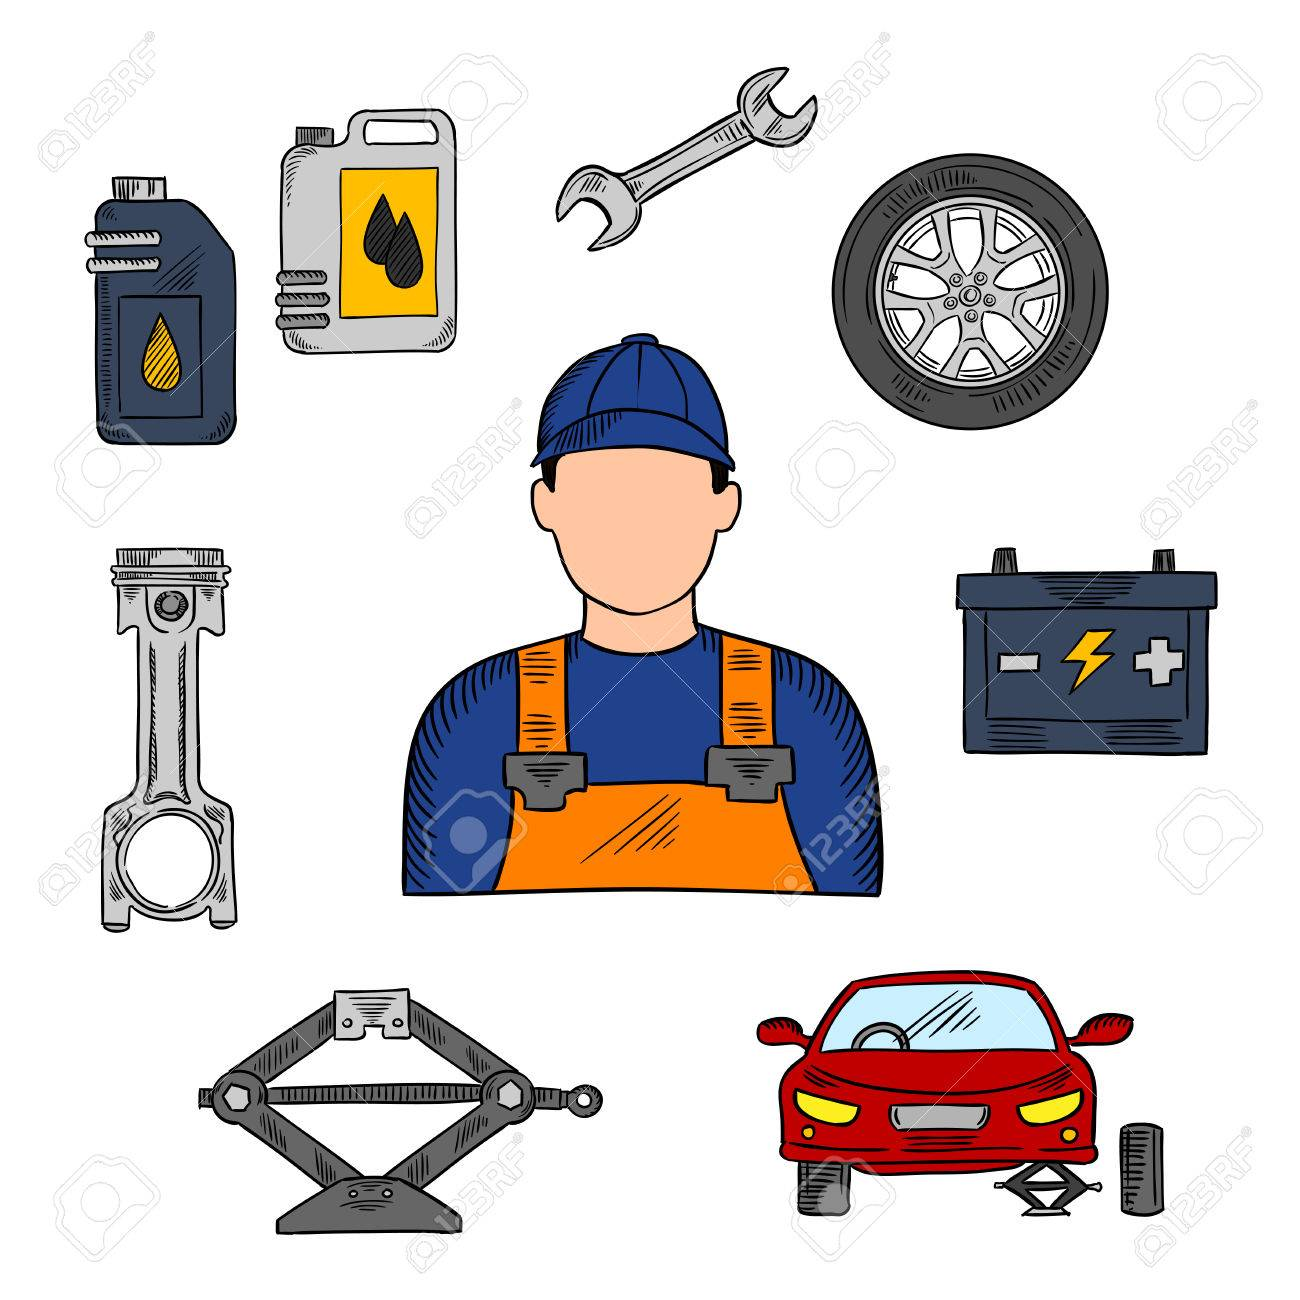 Mechanic In Blue Uniform With Symbols Of Car On Jack Wheel And